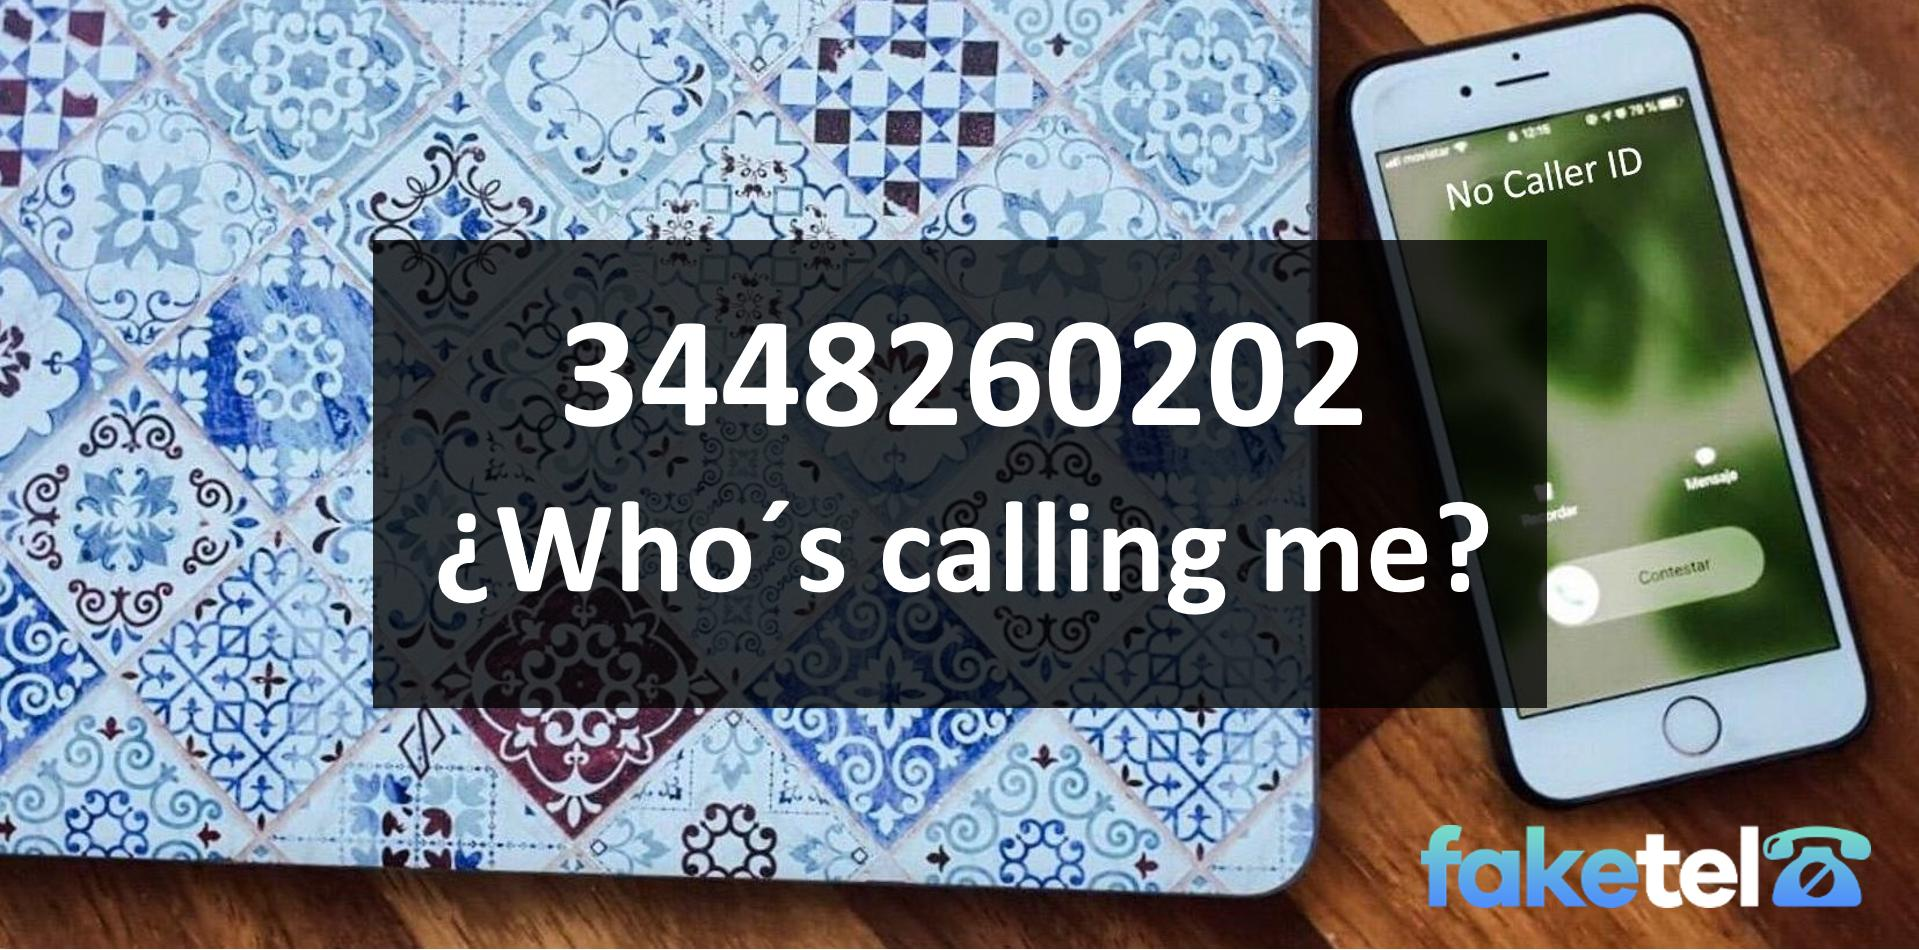 who is calling me 3448260202